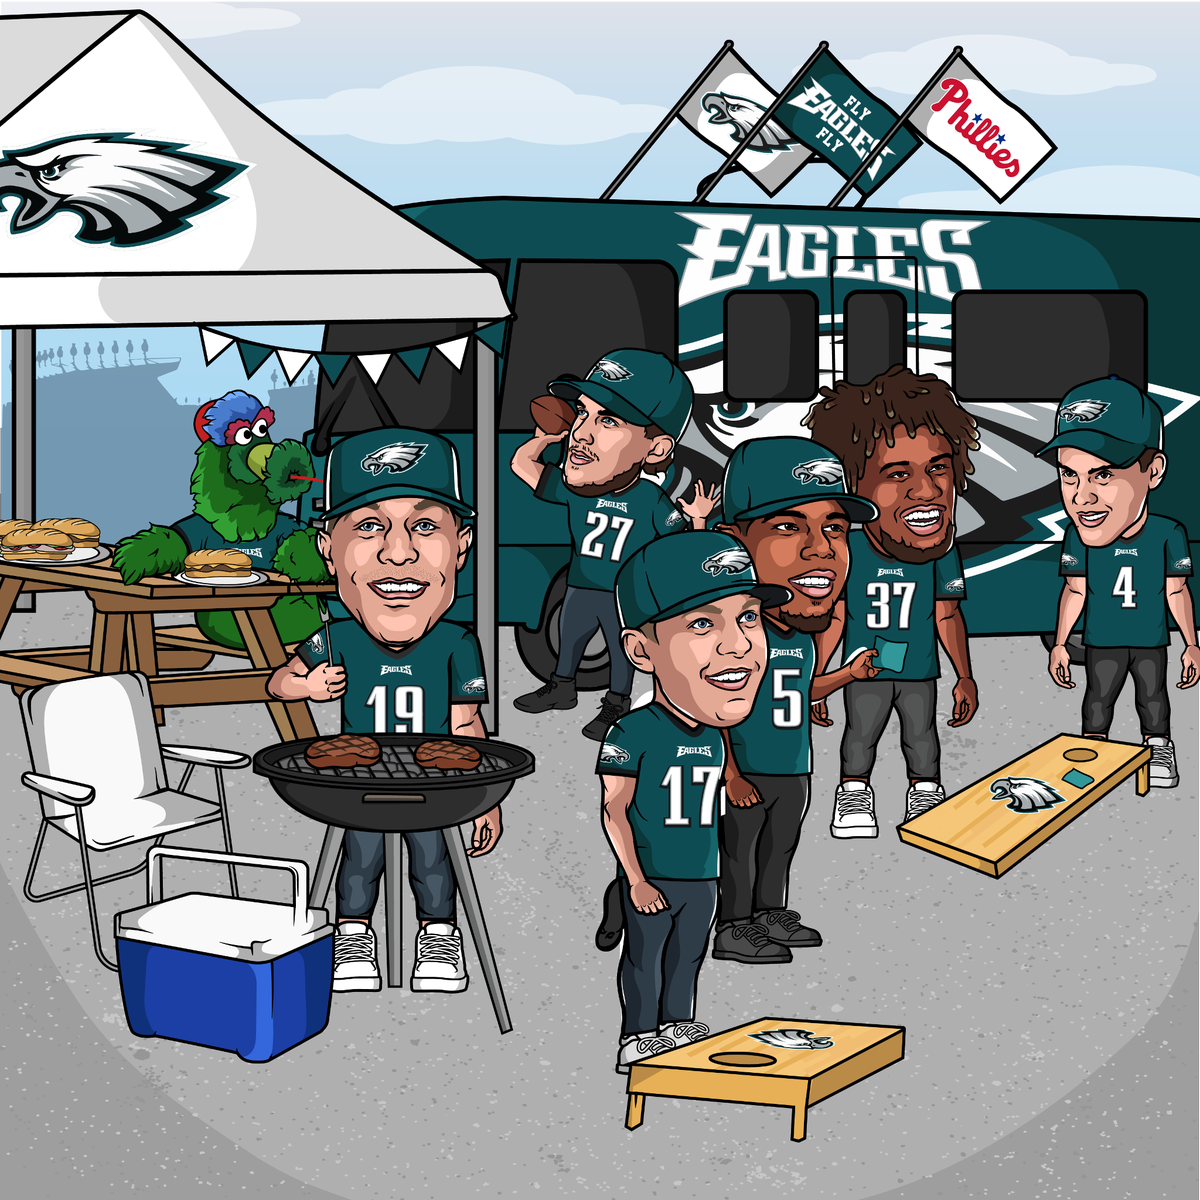 Counting down to kickoff ...  Take care of business today, @Eagles! #FlyEaglesFly